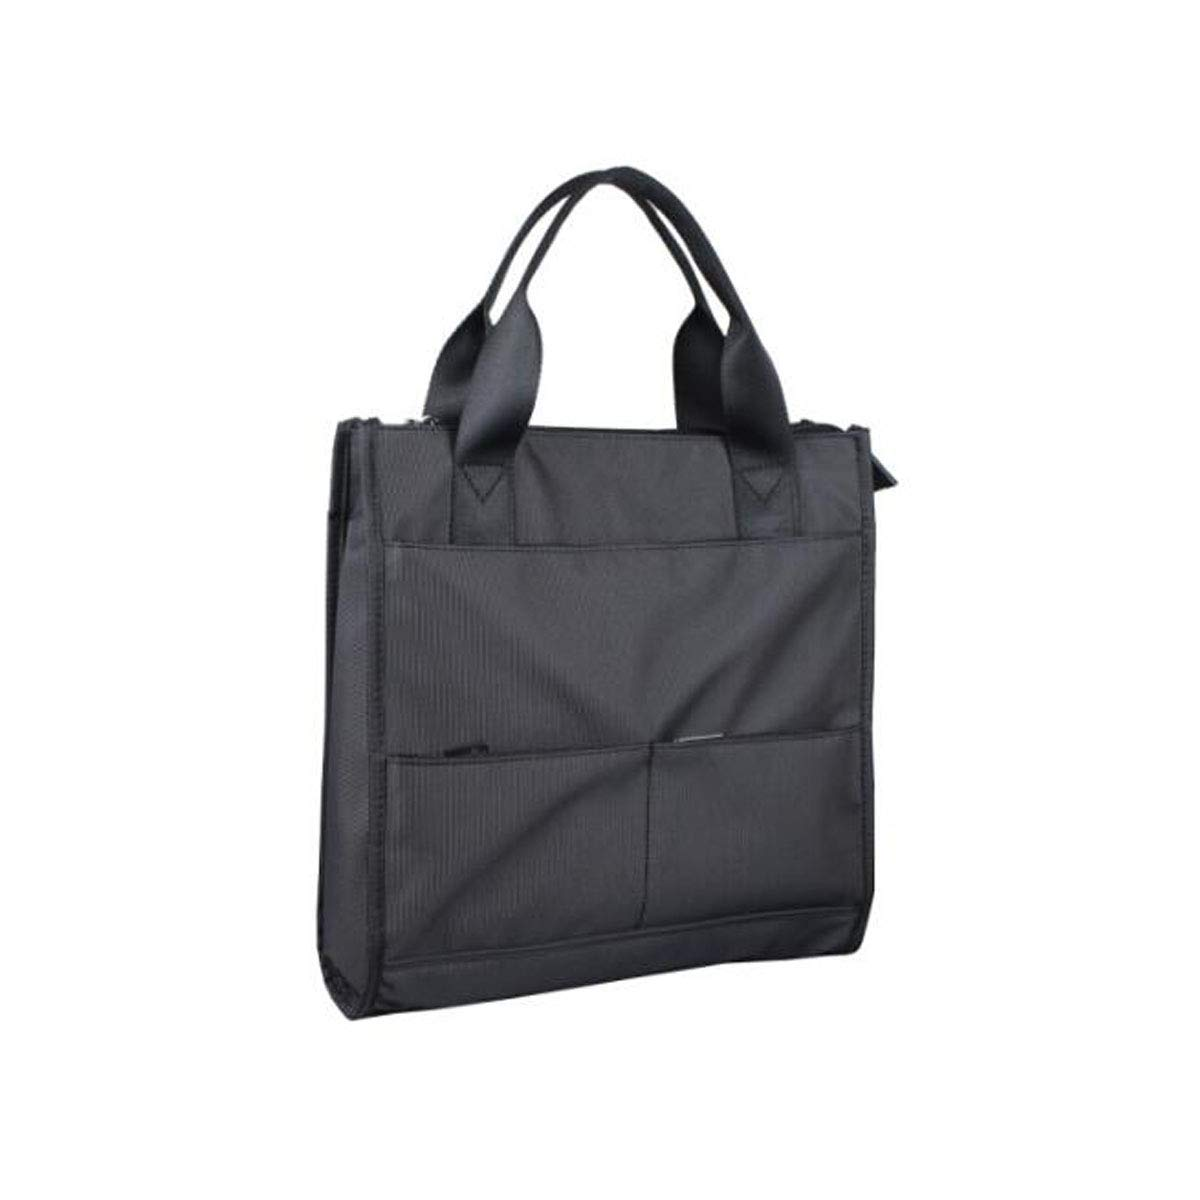 Chenjinxiang Briefcase Color : Black Suitable for Work Simple Mens Nylon Casual Crossbody Bag Size: 32930cm Concise Waterproof and Wearable Business Travel